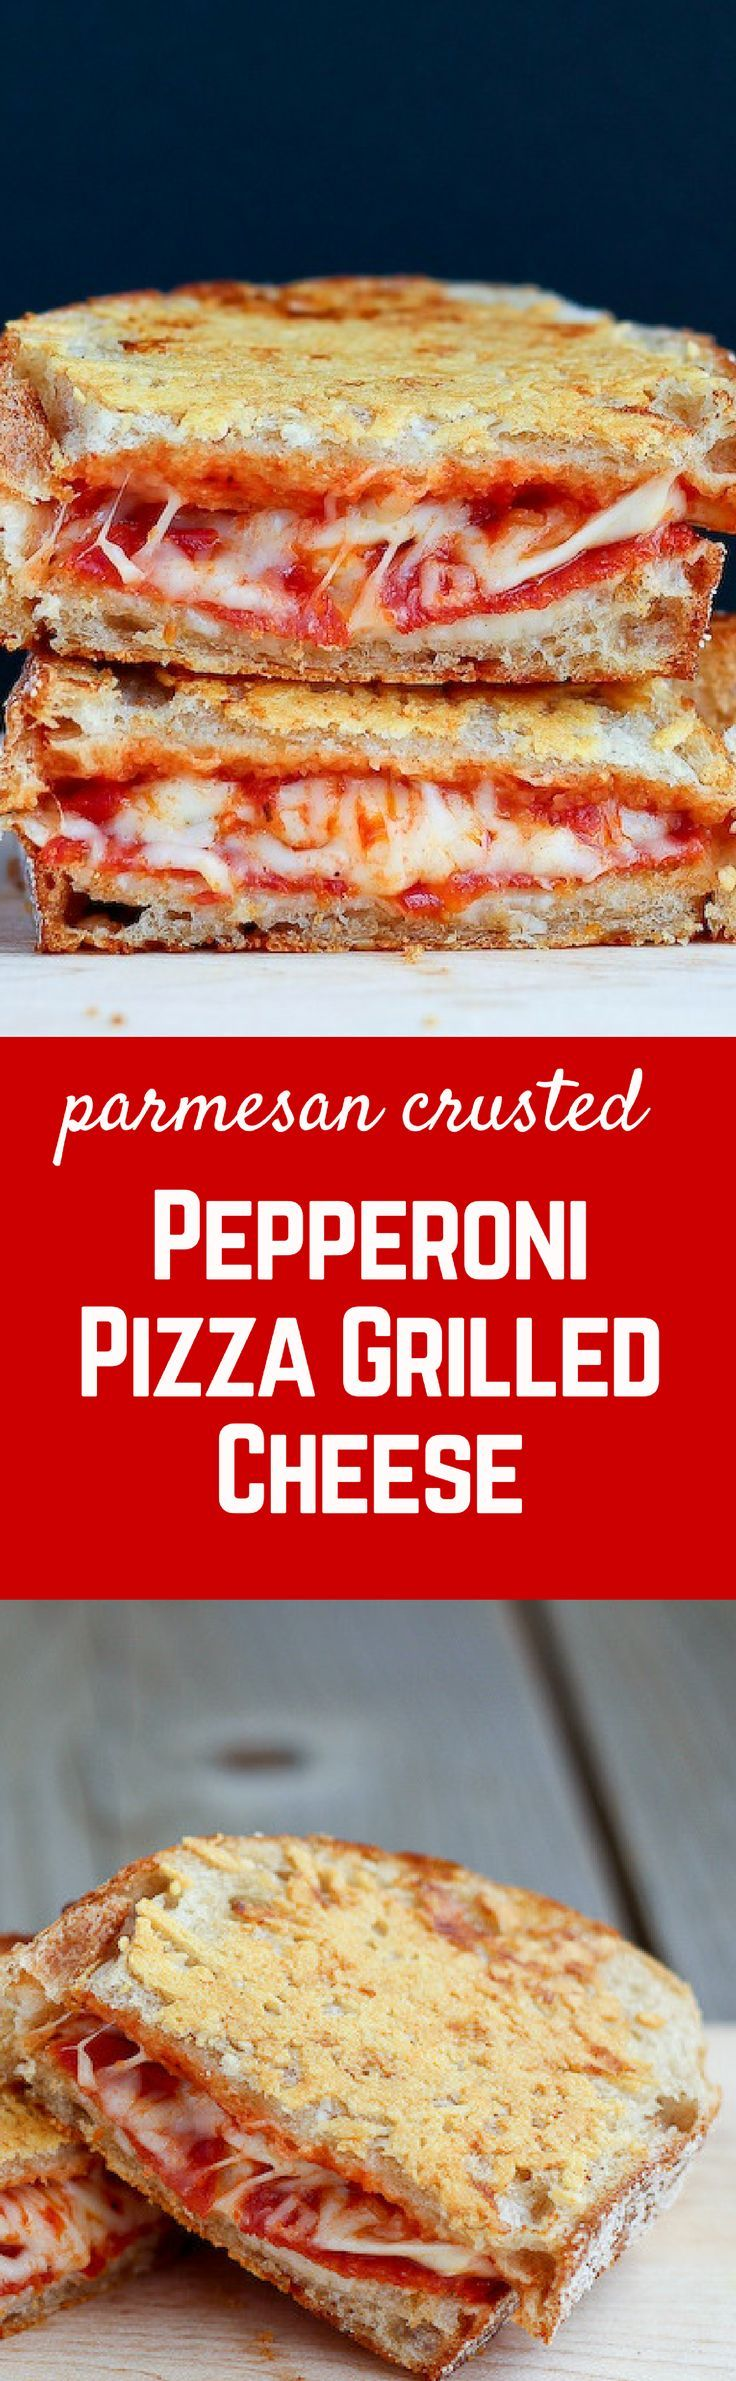 Pepperoni Pizza Grilled Cheese with a crispy parmesan cheese crust - so good you'll never go back to plain grilled cheese! Find the recipe on http://RachelCooks.com